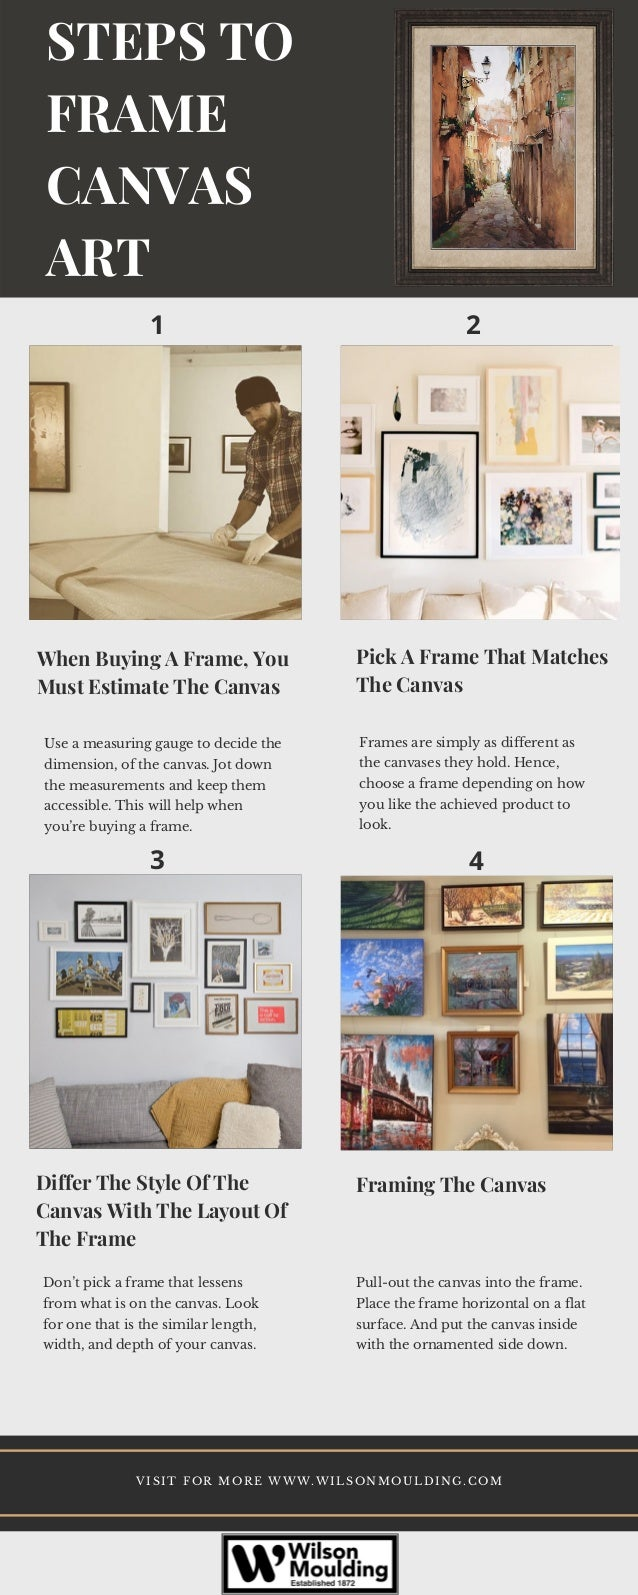 images?q=tbn:ANd9GcQh_l3eQ5xwiPy07kGEXjmjgmBKBRB7H2mRxCGhv1tFWg5c_mWT Great How To Frame Art On Canvas Resources Details @capturingmomentsphotography.net